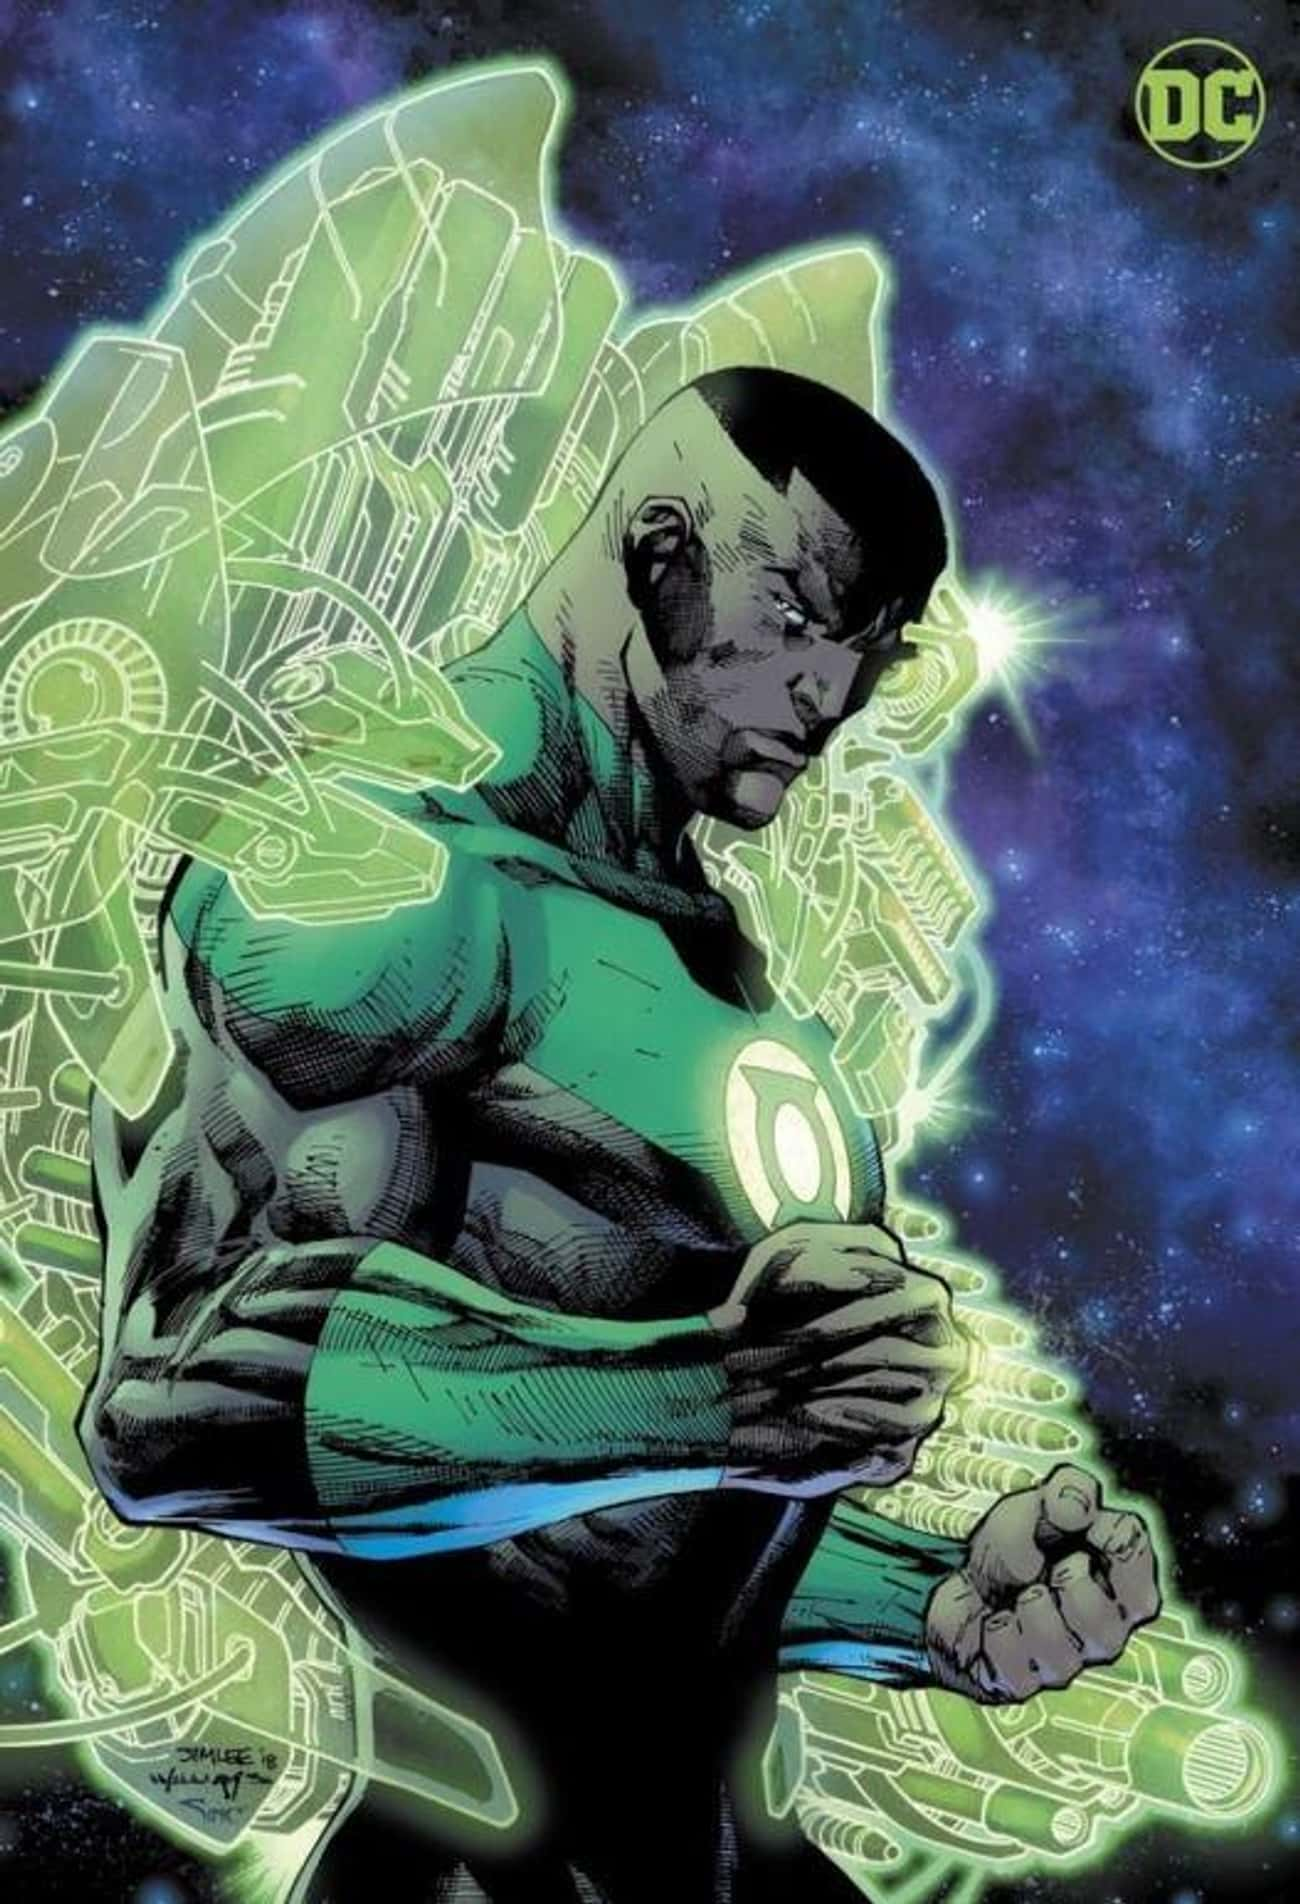 John Stewart, The Green Lanter is listed (or ranked) 1 on the list The Biggest Superheroes And Villains Who Have Never Appeared In Live-Action